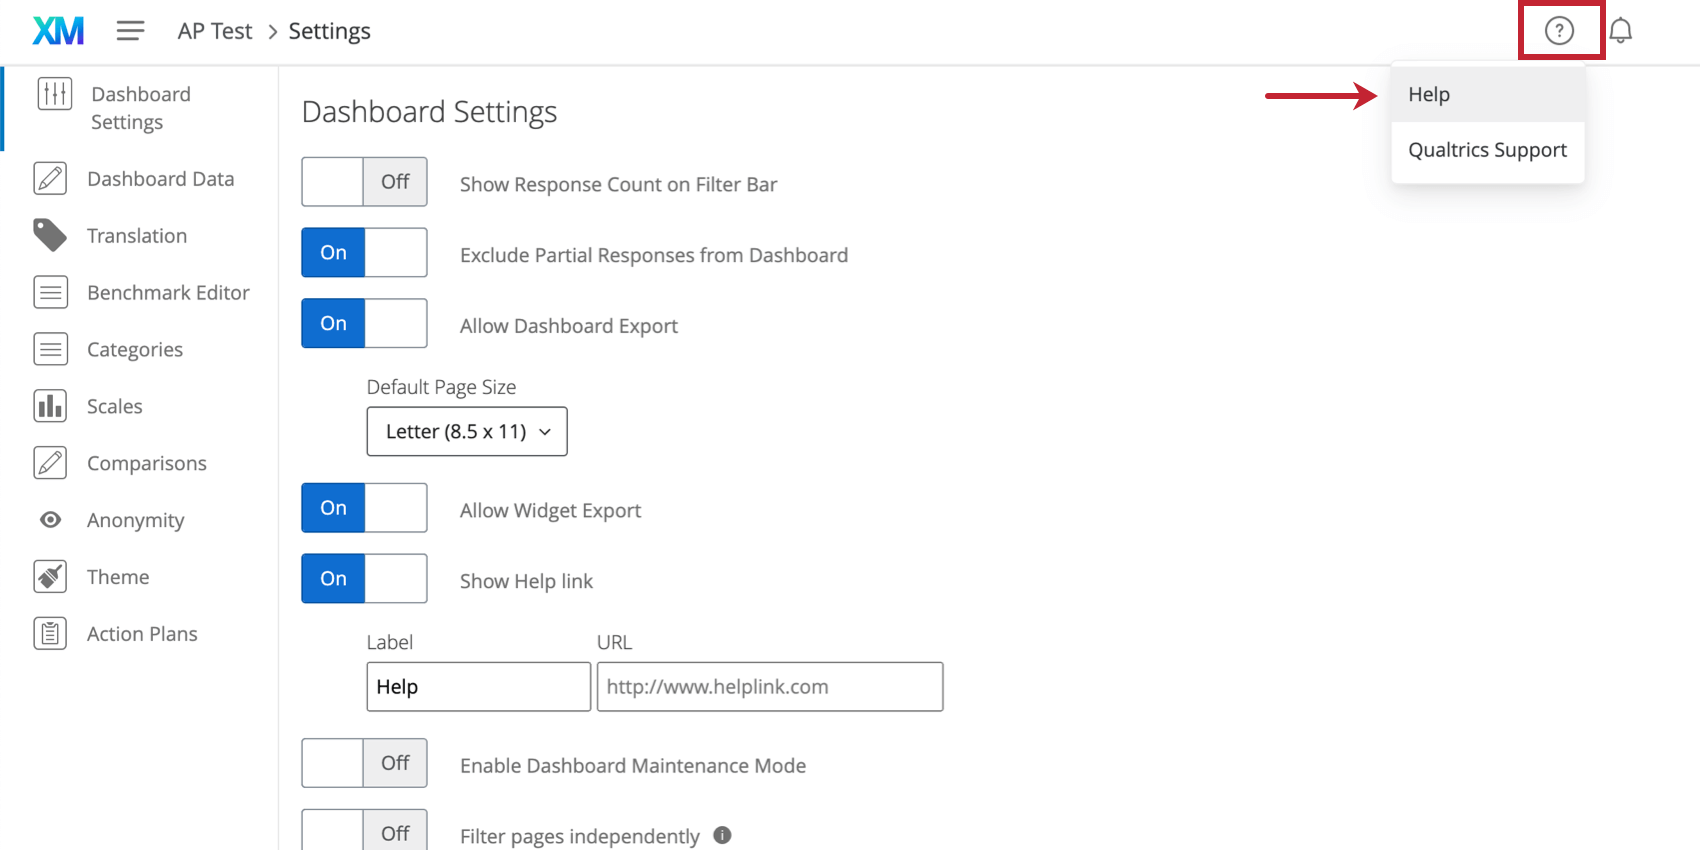 Question mark button opens to have an option for qualtrics support and the custom help link